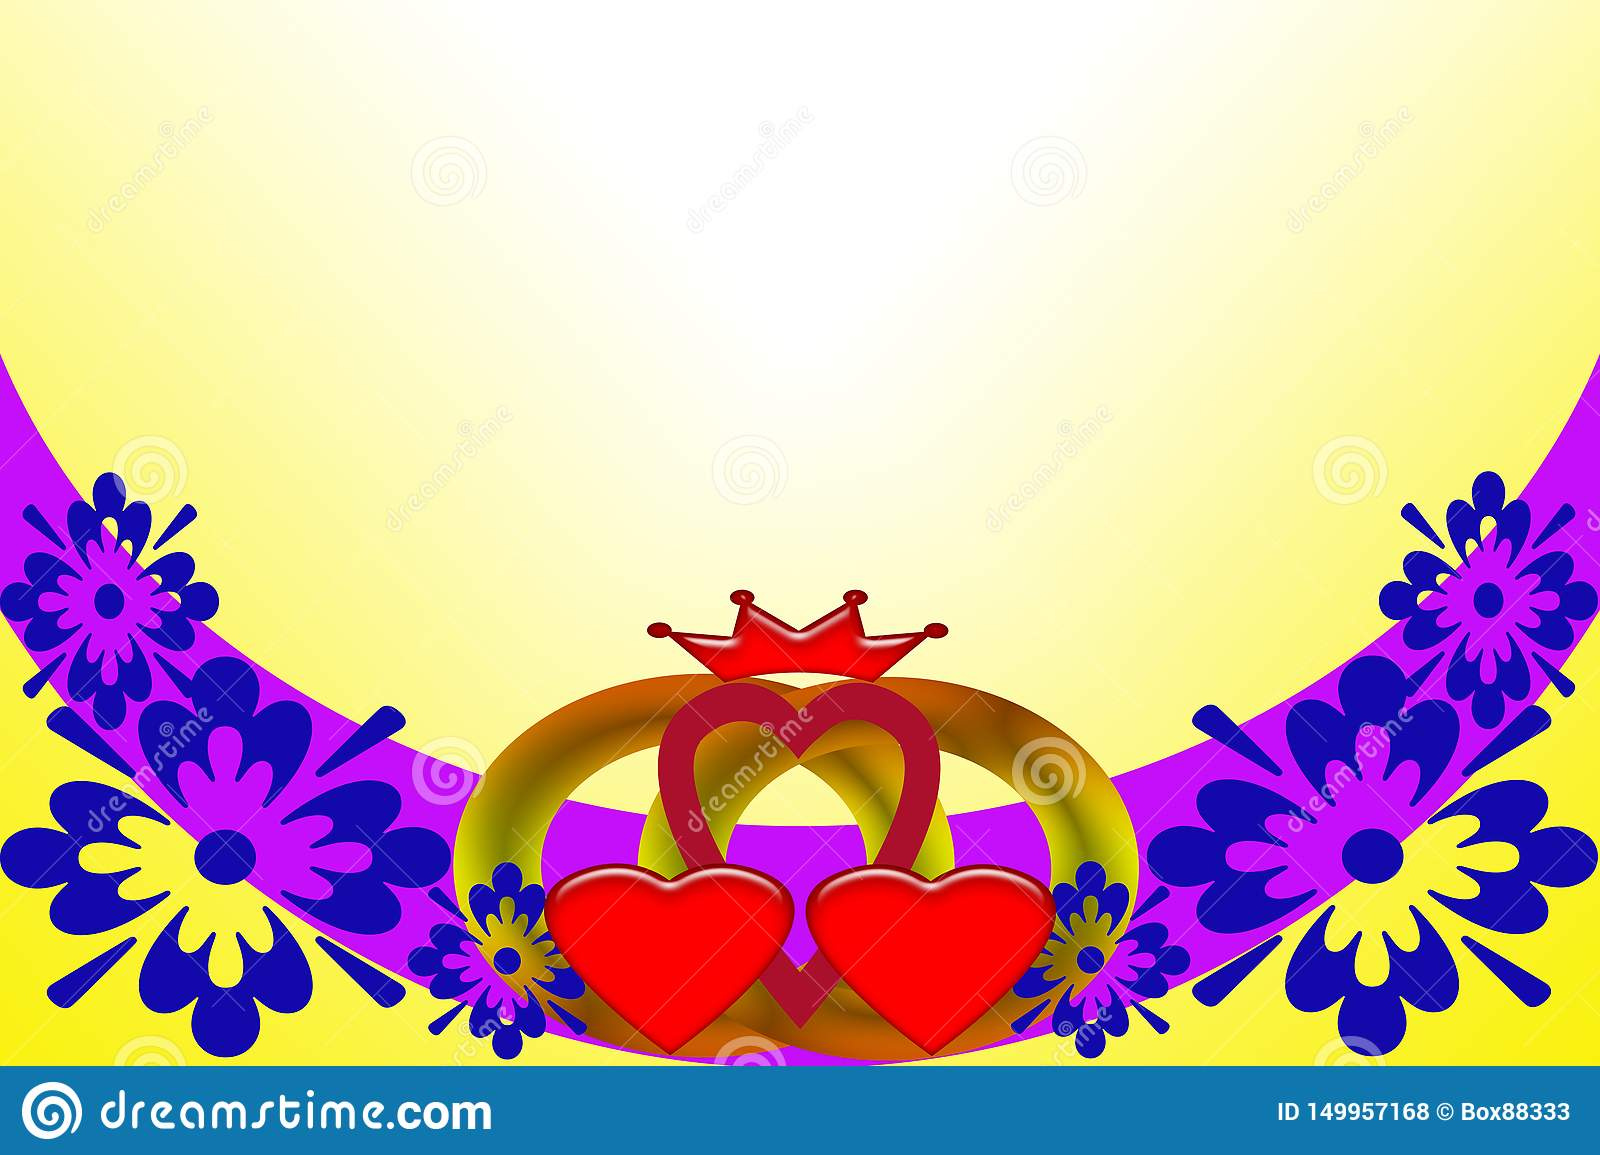 Wedding invitation. Abstract image with multicolored elements.